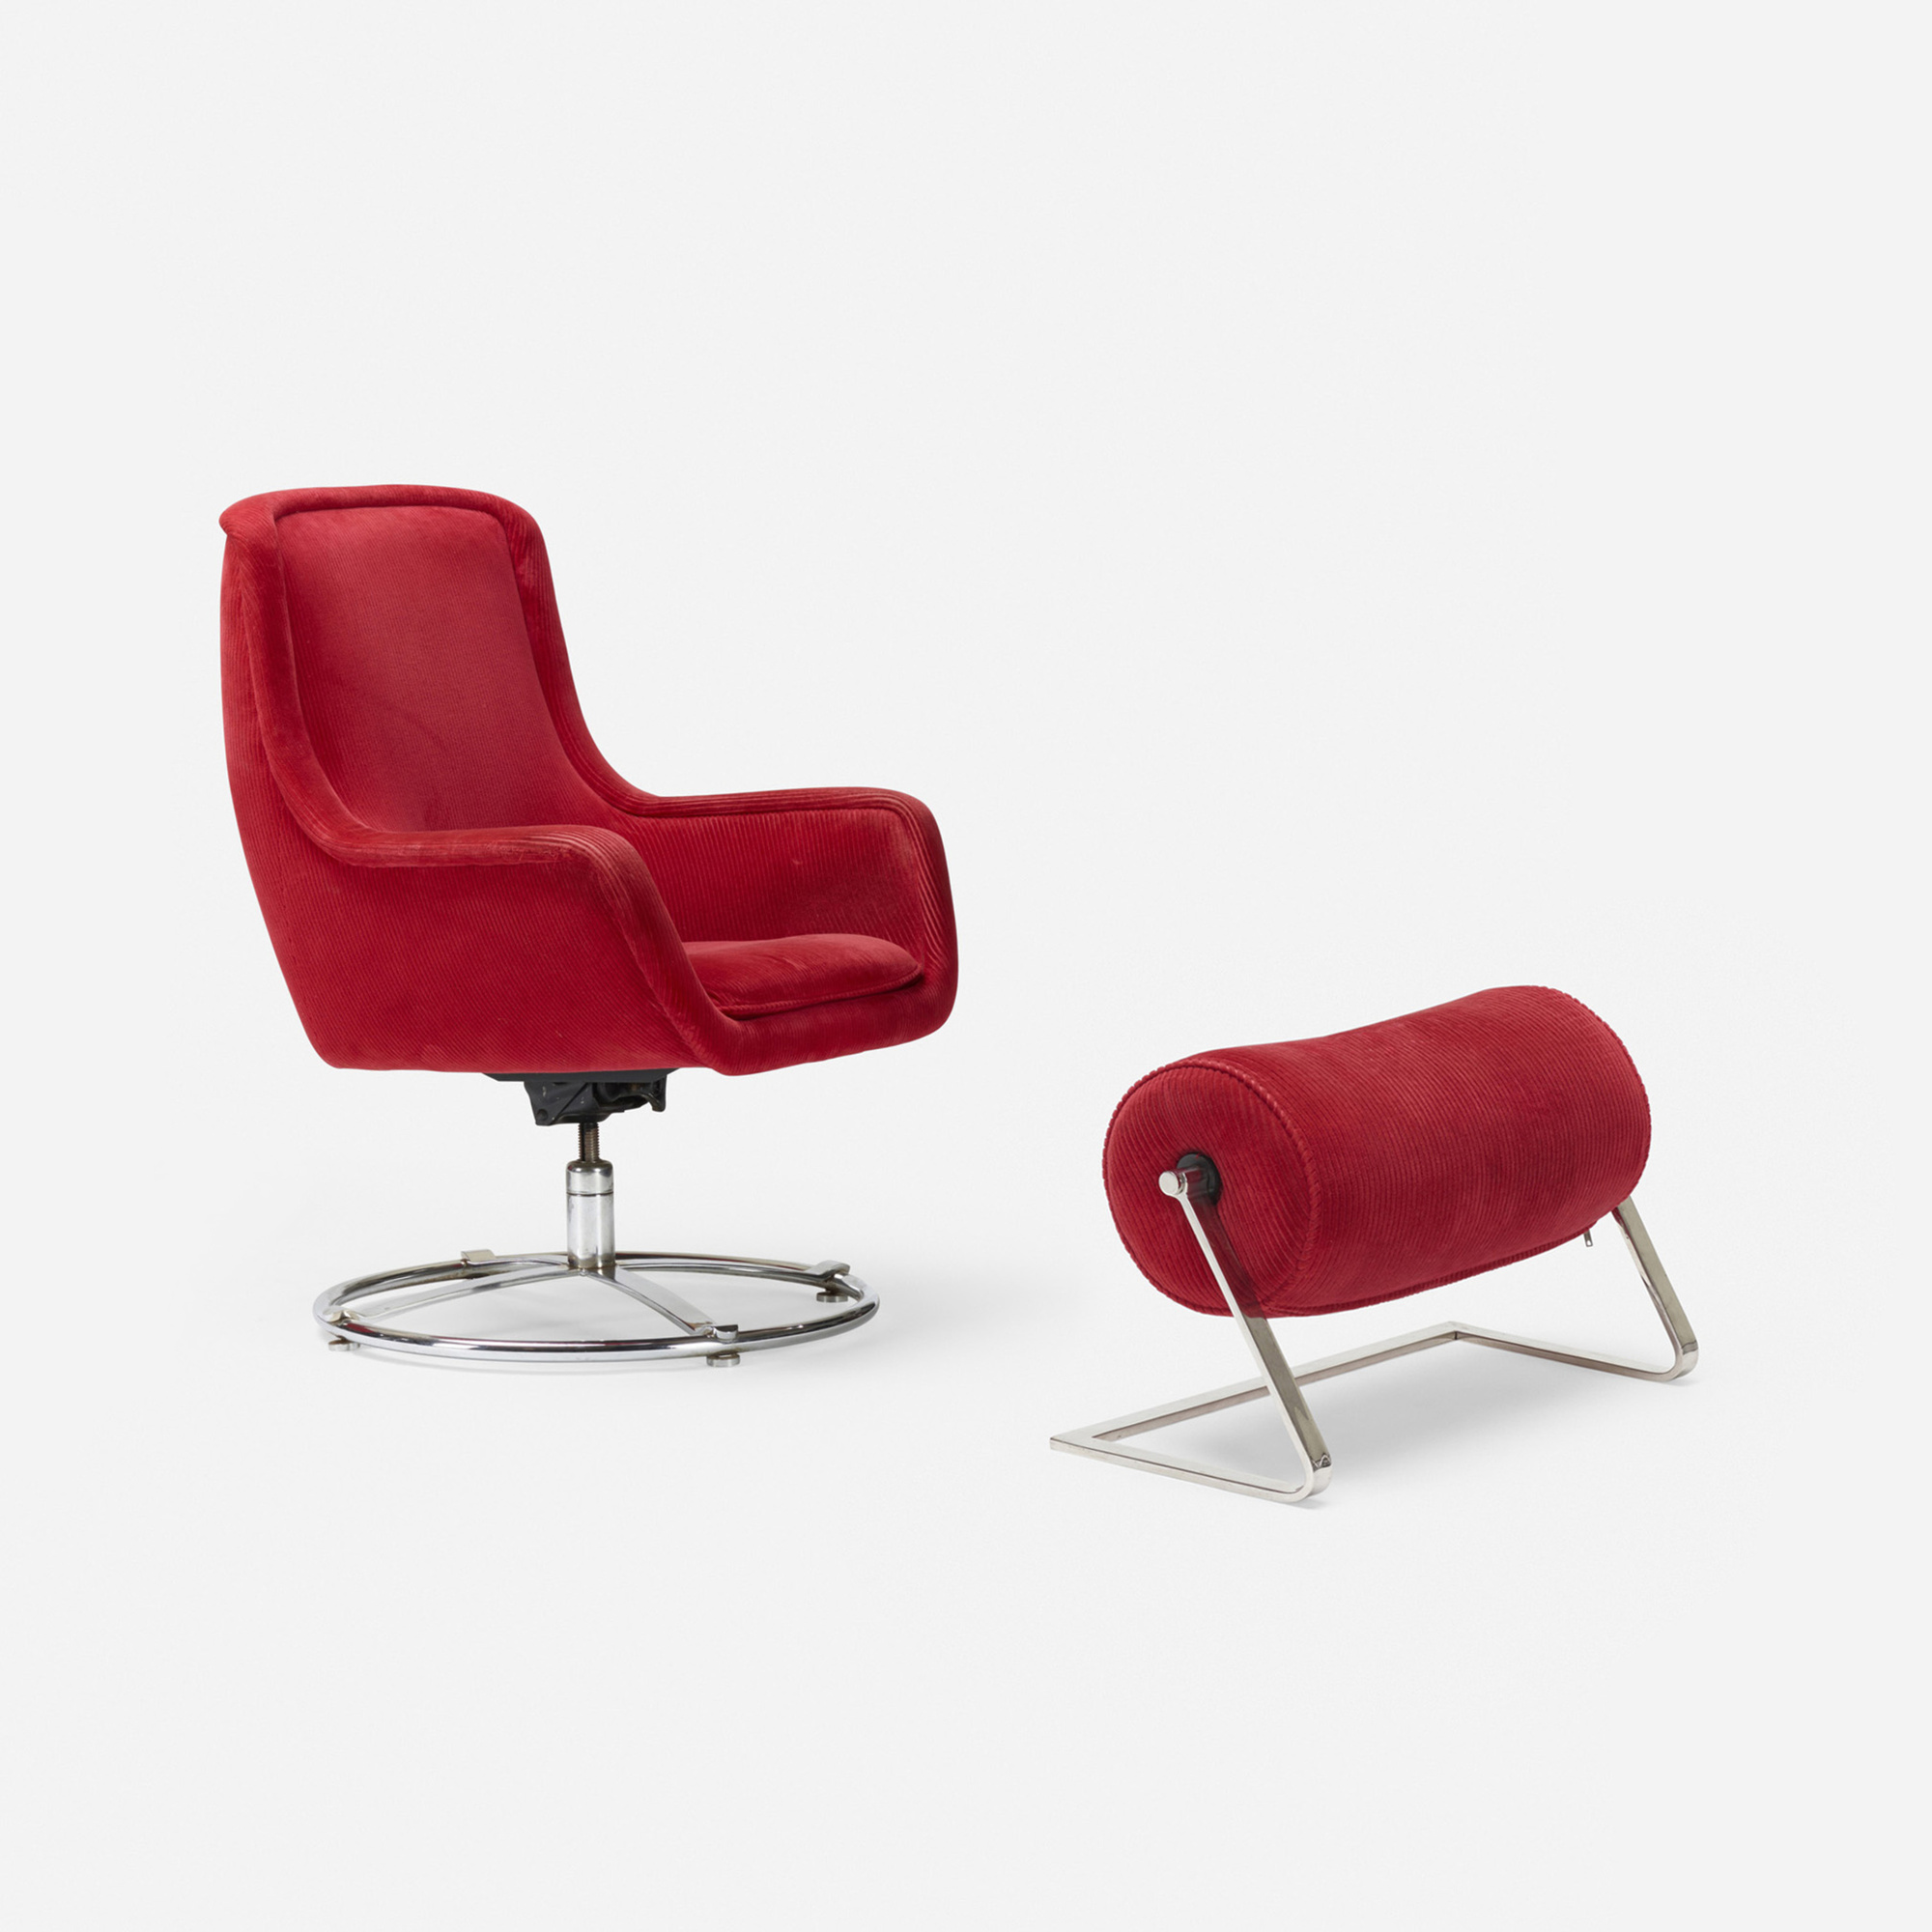 165: Ward Bennett / lounge chair model, 1041 and ottoman model, 1059 (1 of 1)